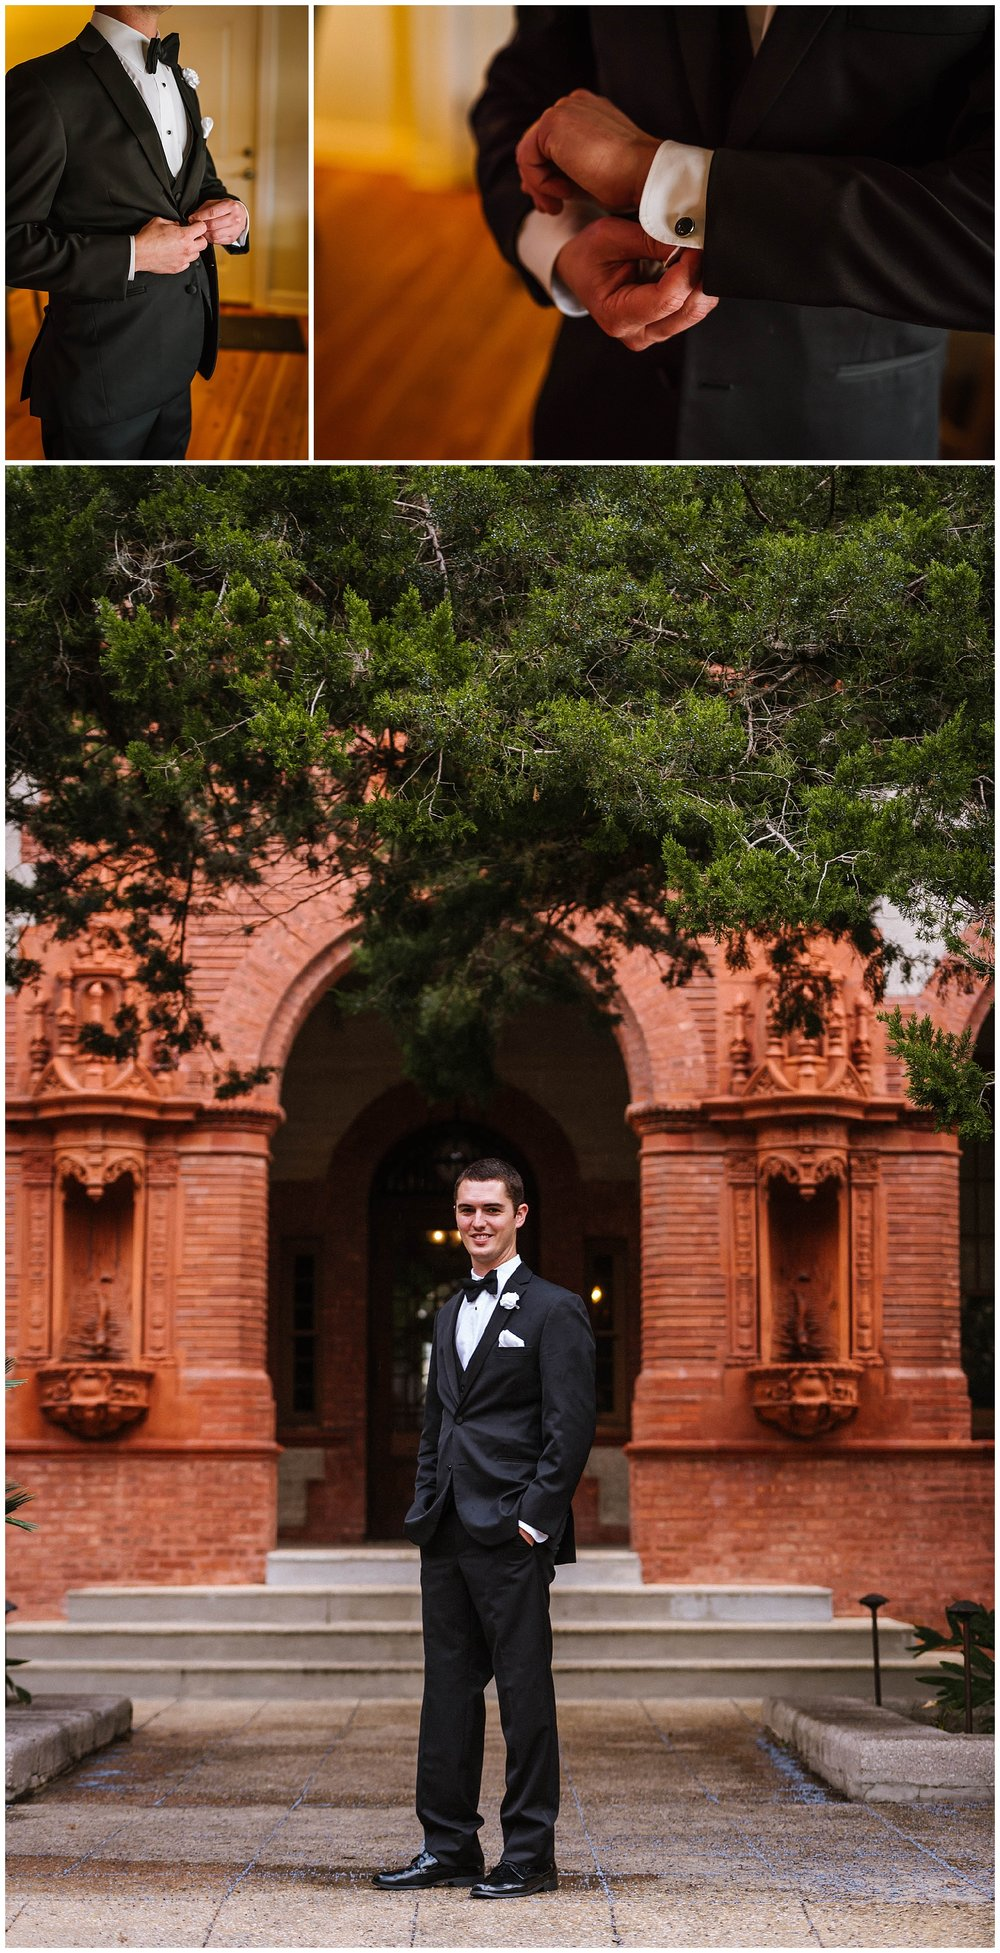 st-augustine-wedding-photographer-rainy-lightner-museum-flagler-casa-monica_0007.jpg